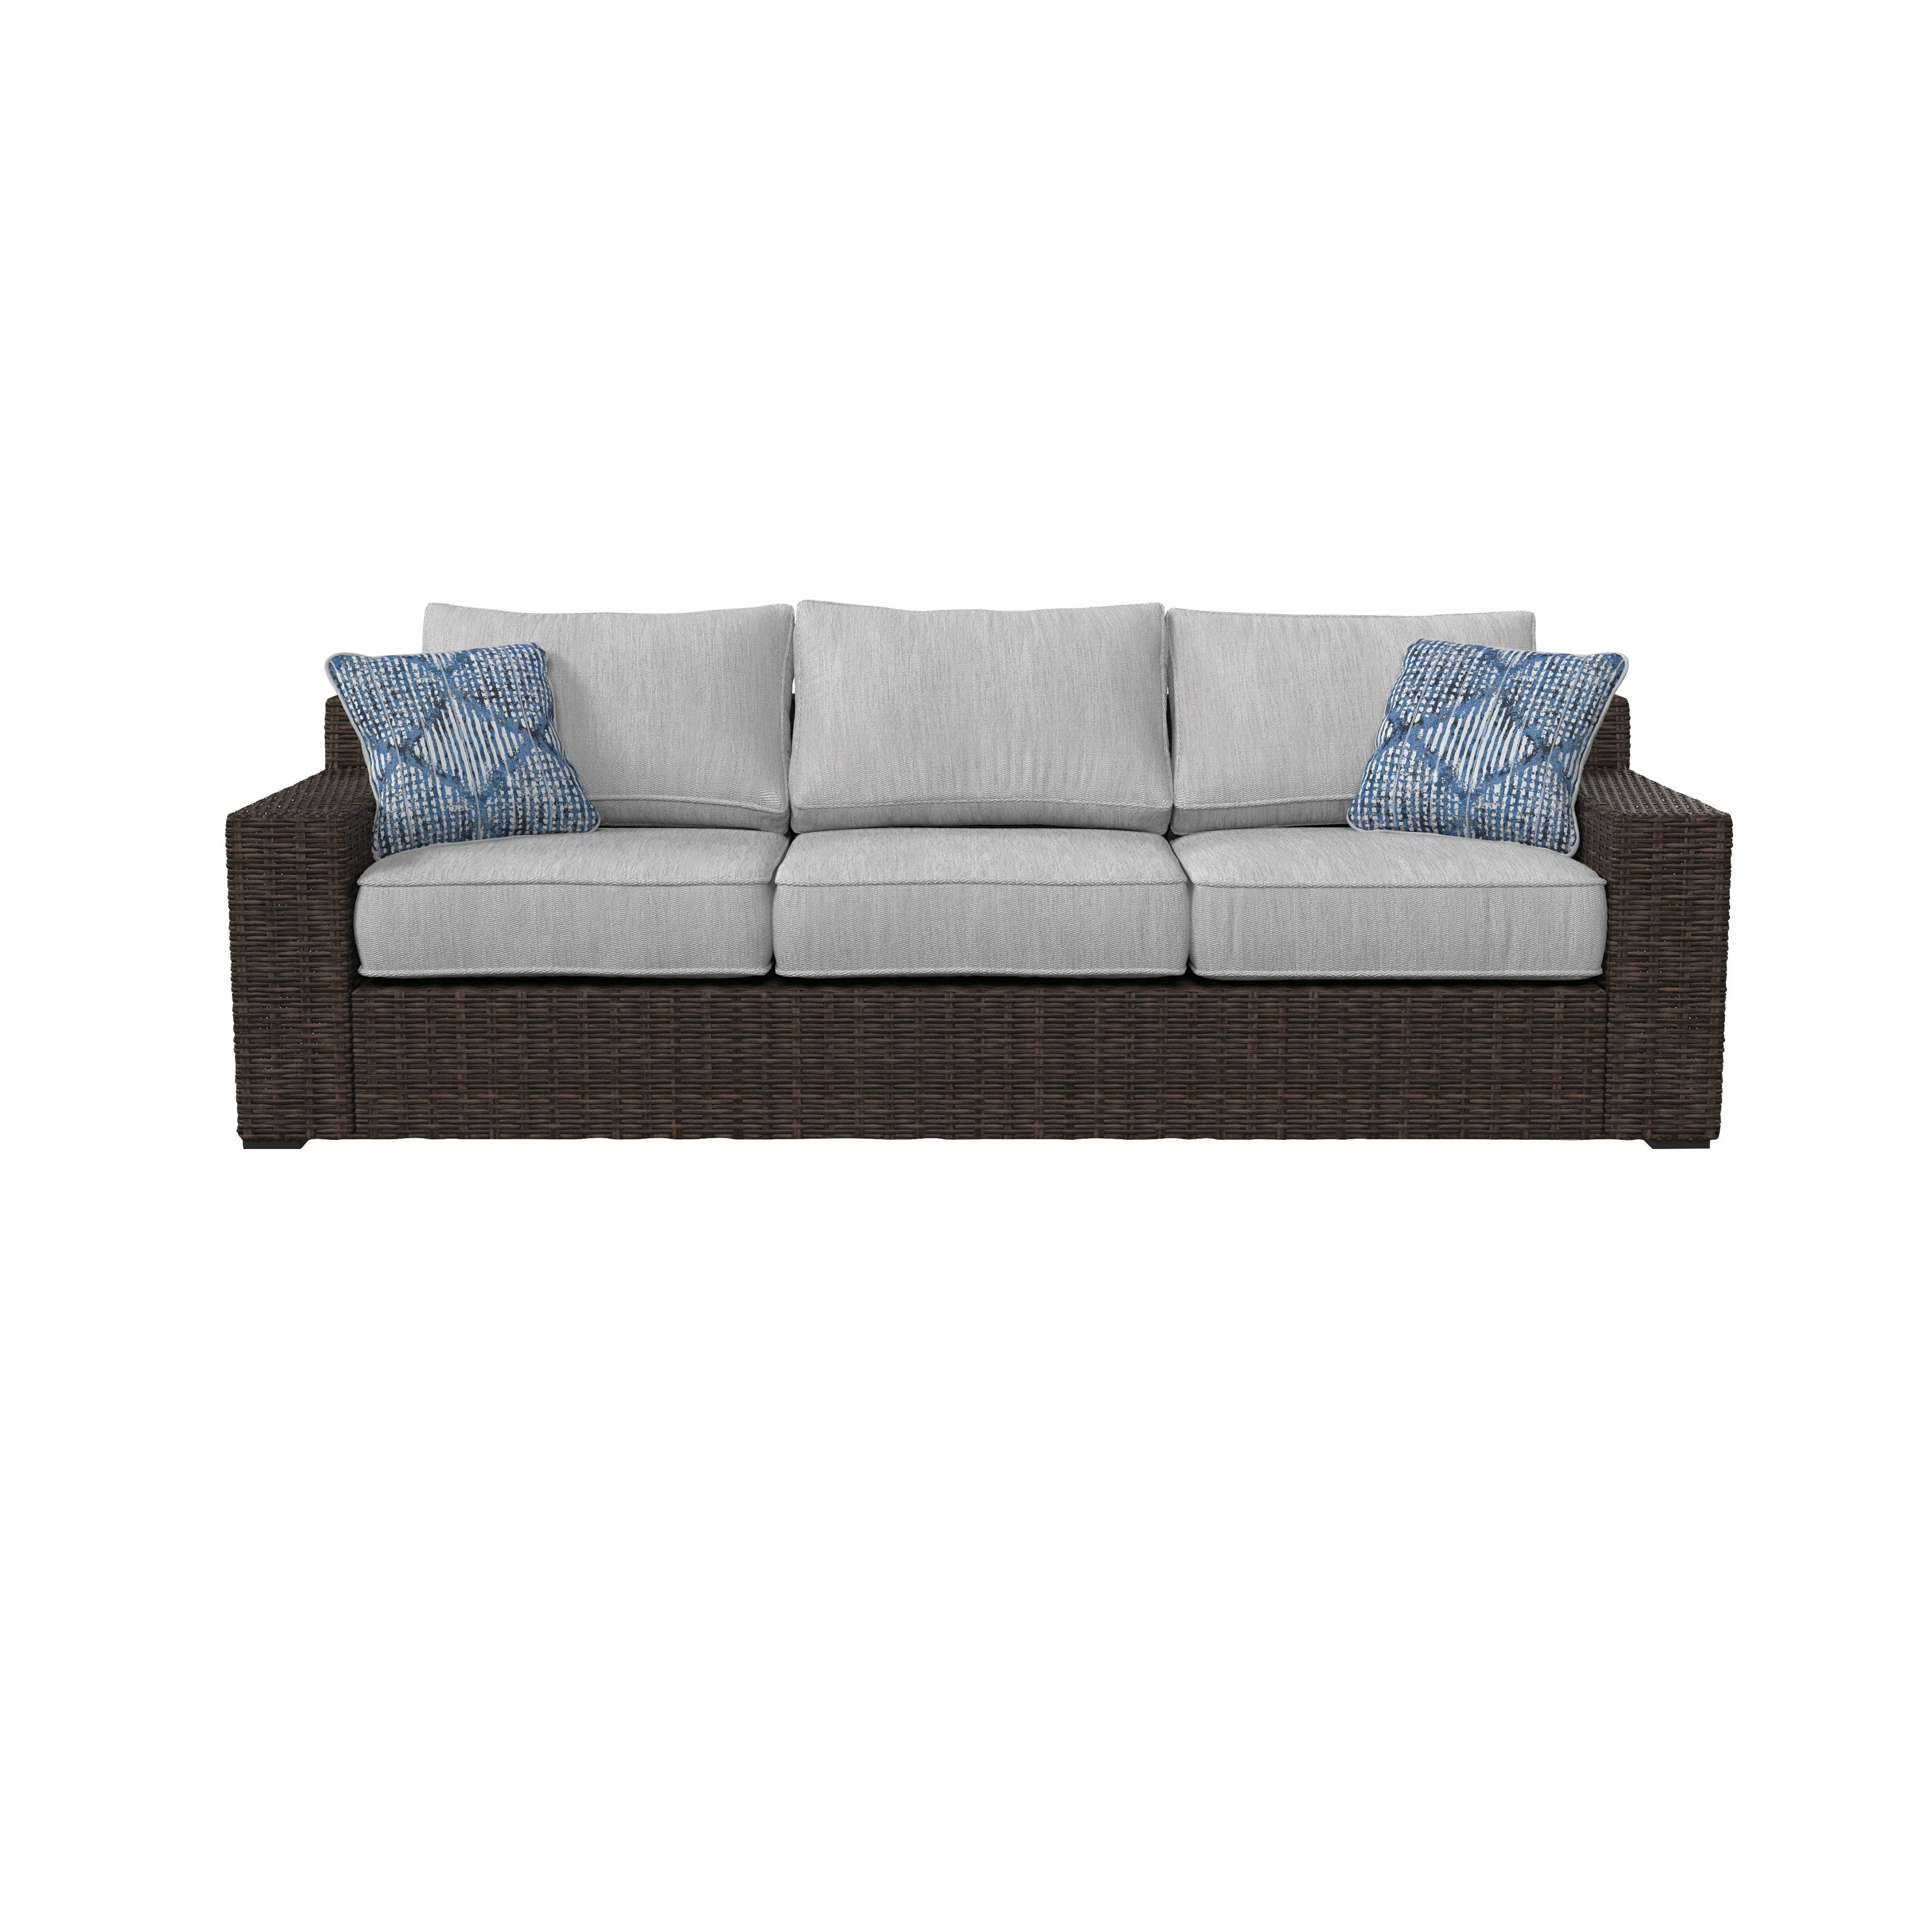 Famous Oreland Patio Sofa With Cushions Intended For Mcmanis Patio Sofas With Cushion (View 17 of 20)